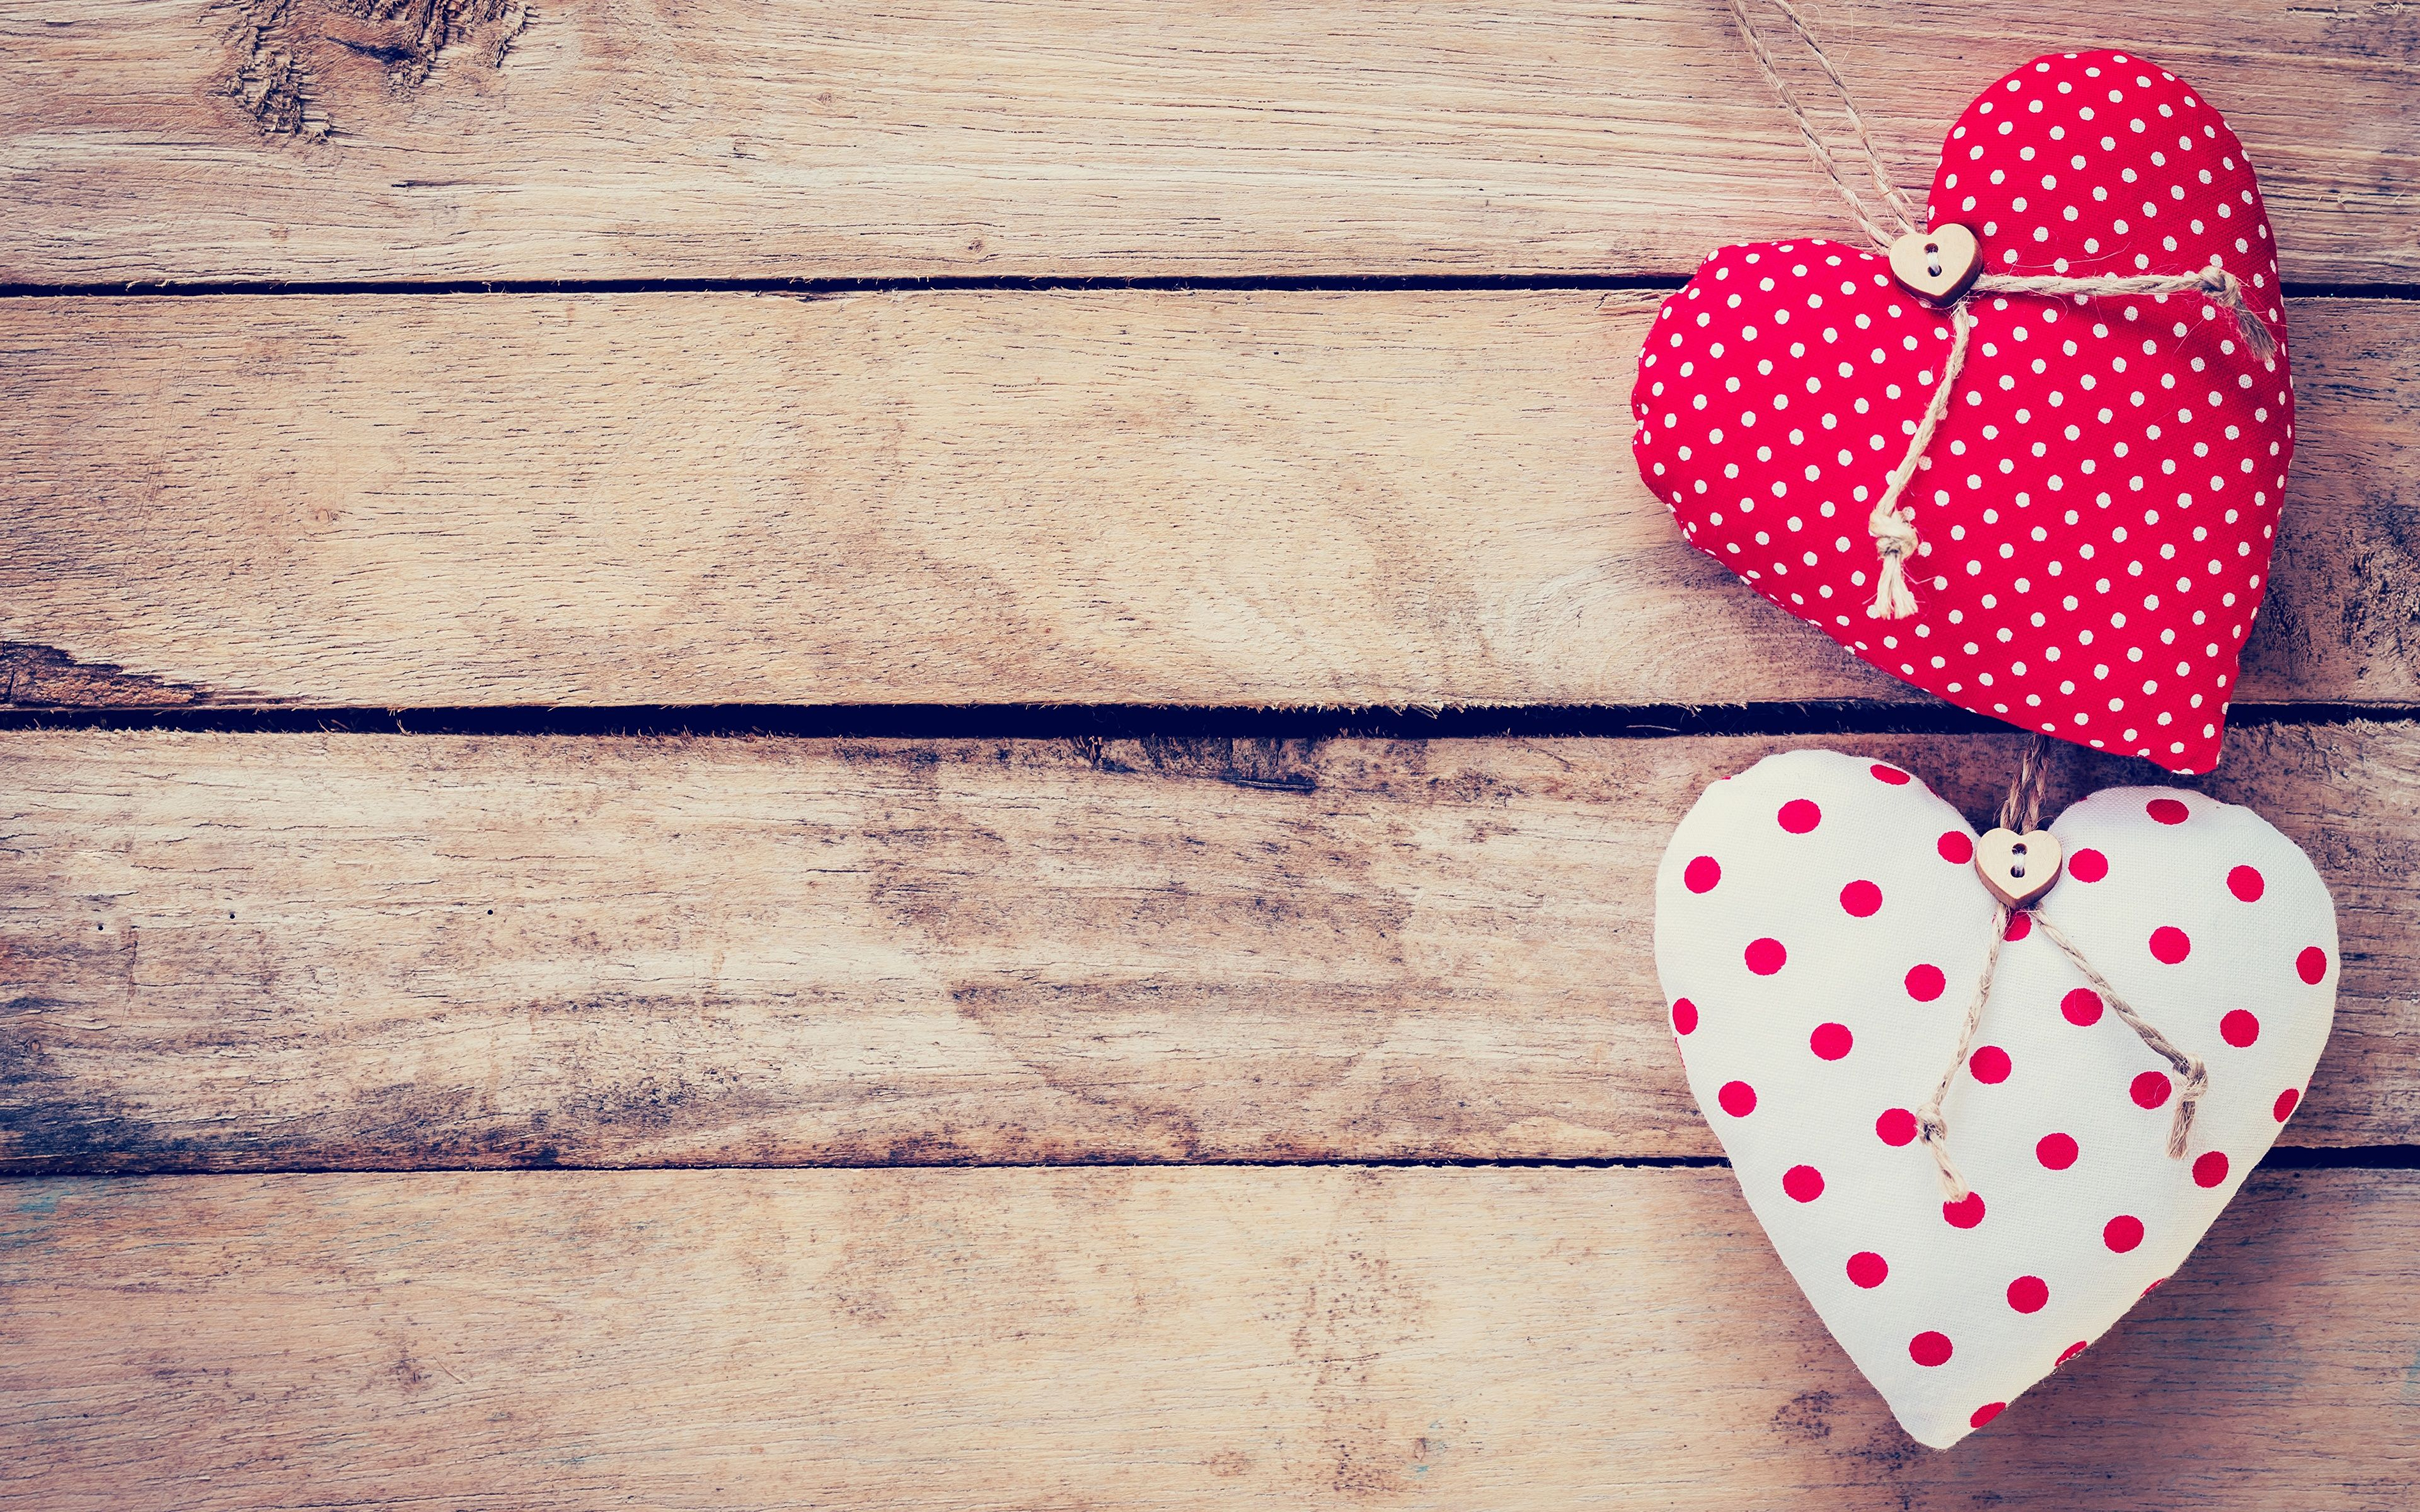 Wallpapers Valentines Day Holiday Red Polka Dot Pattern Valentines Valentines Day Background Valentines Day Holiday